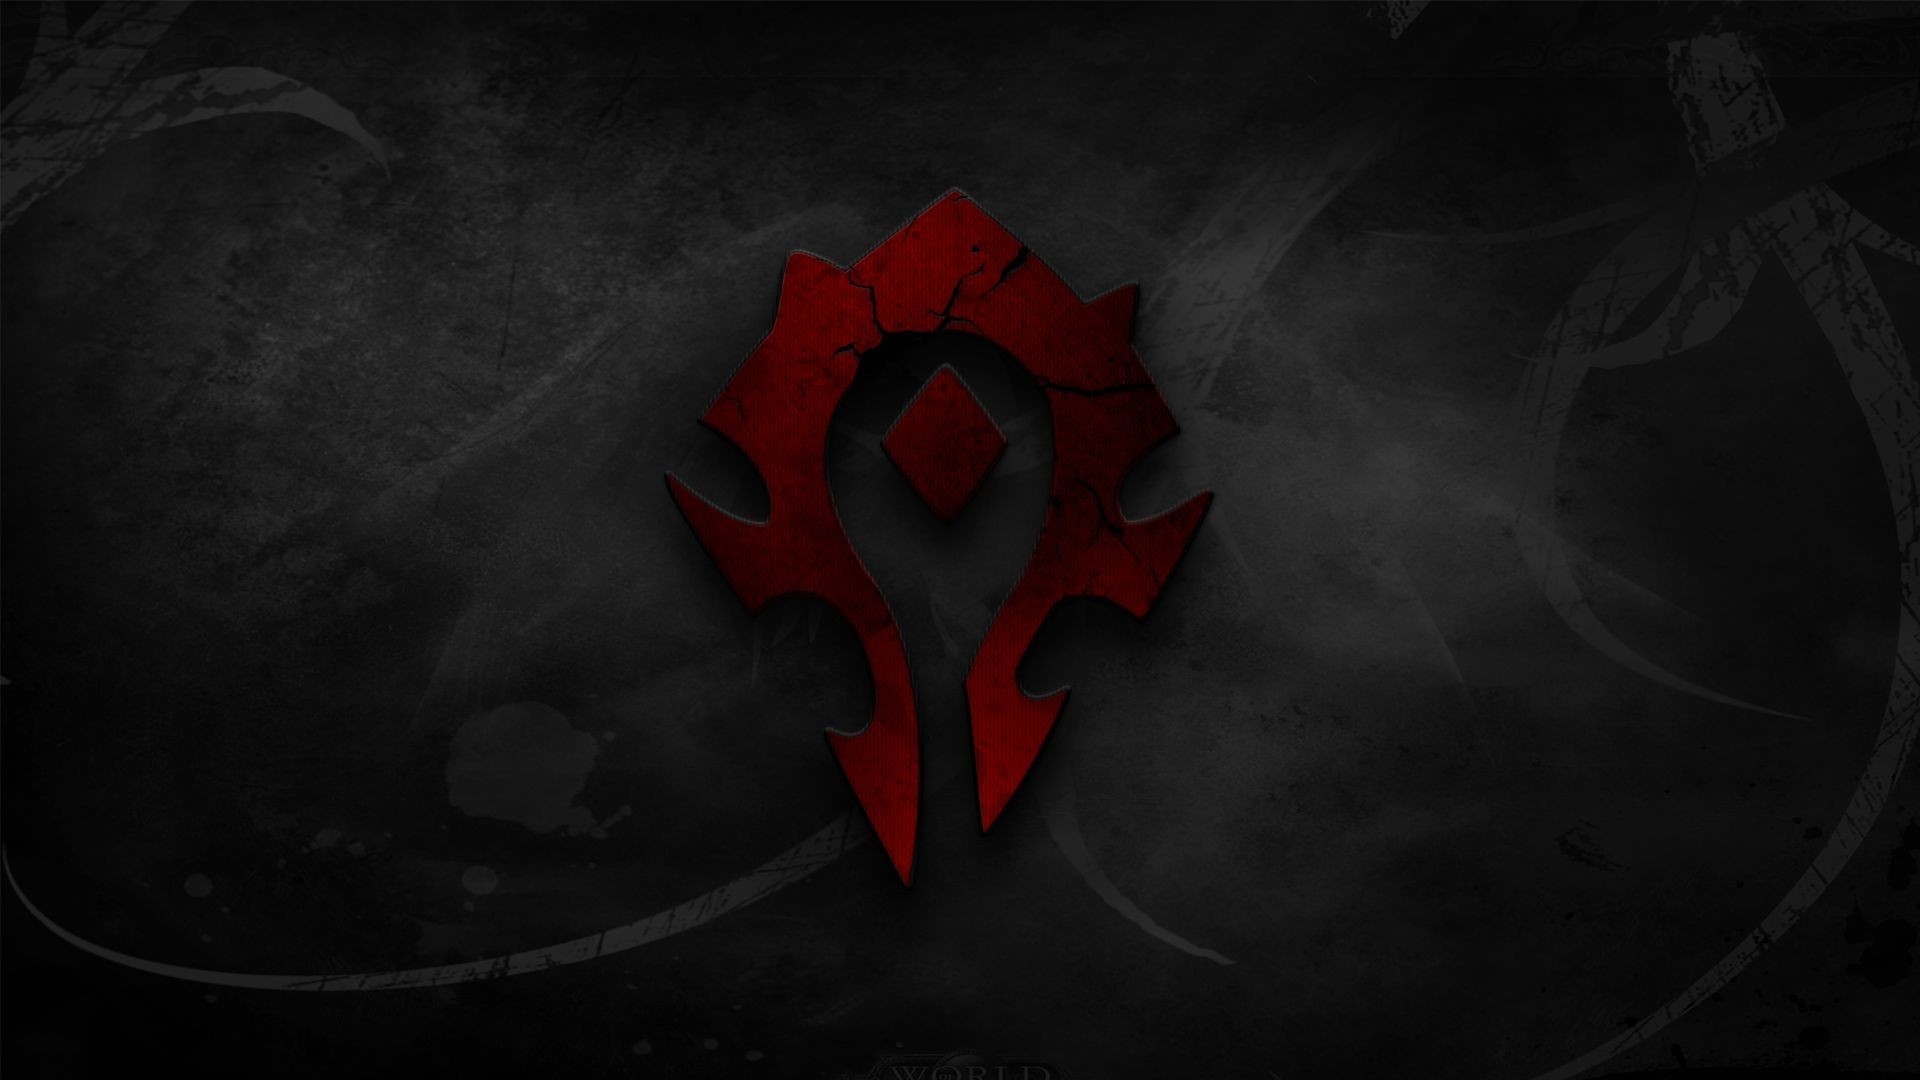 Horde Wallpaper Posted By Ethan Anderson